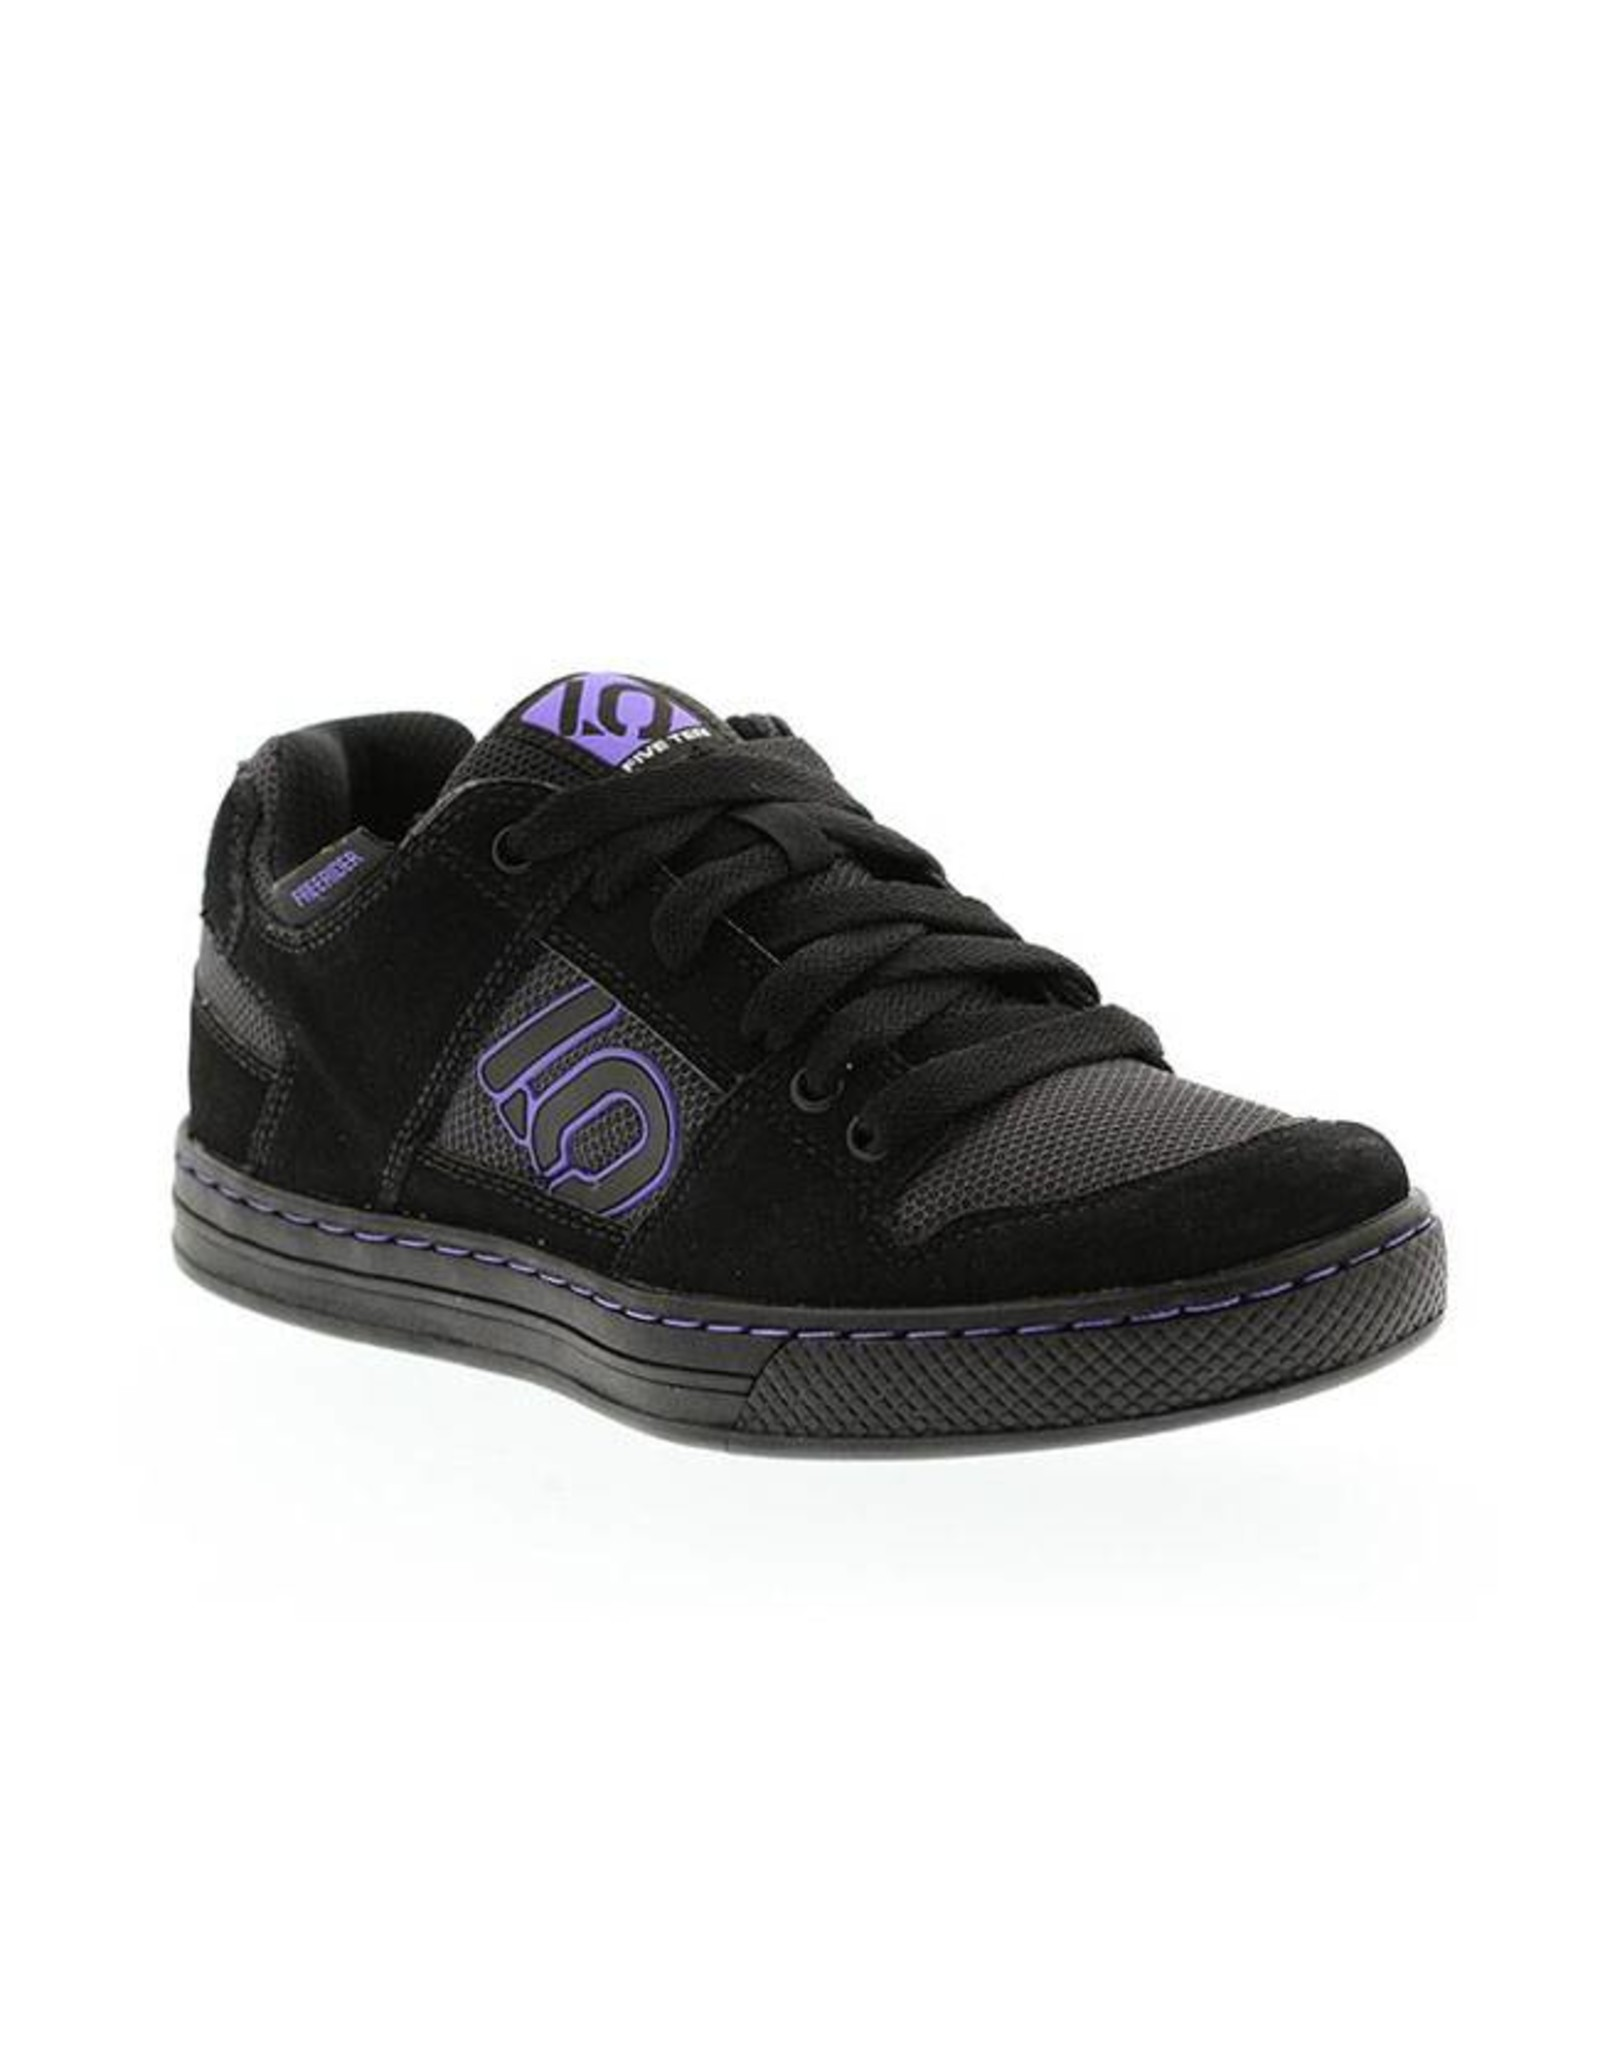 Five Ten Five Ten Freerider Women's Flat Pedal Shoe: Black/Purple 10